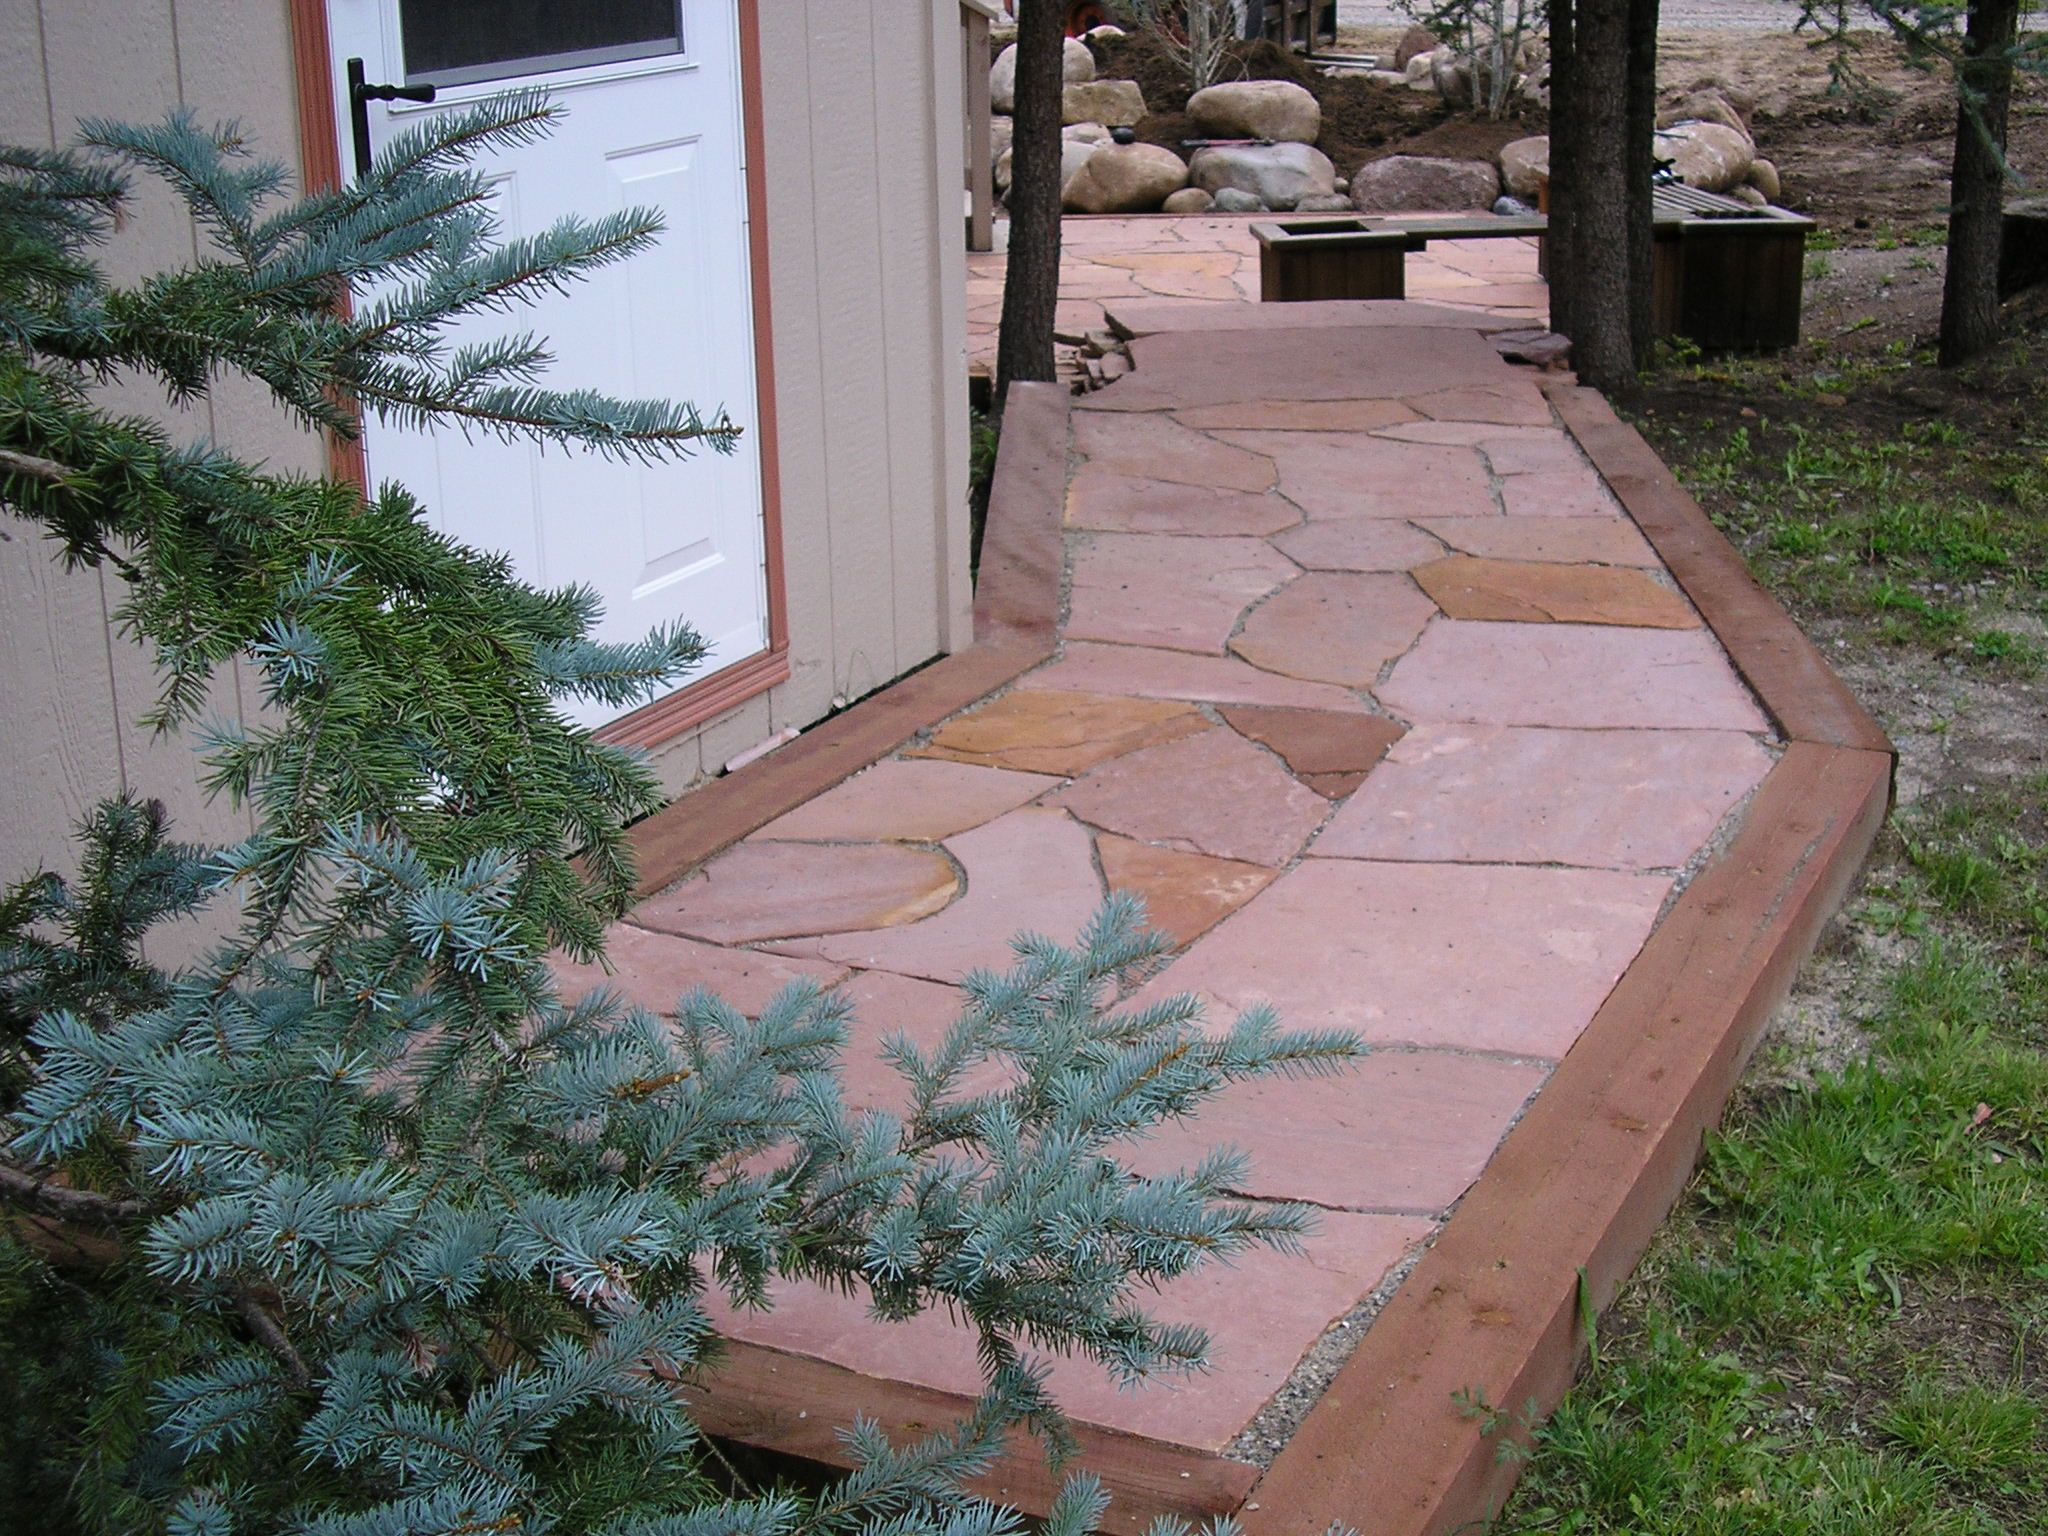 rose colored flagstone walkway by gardenhart landscape design garden ideas - Flagstone Walkway Design Ideas